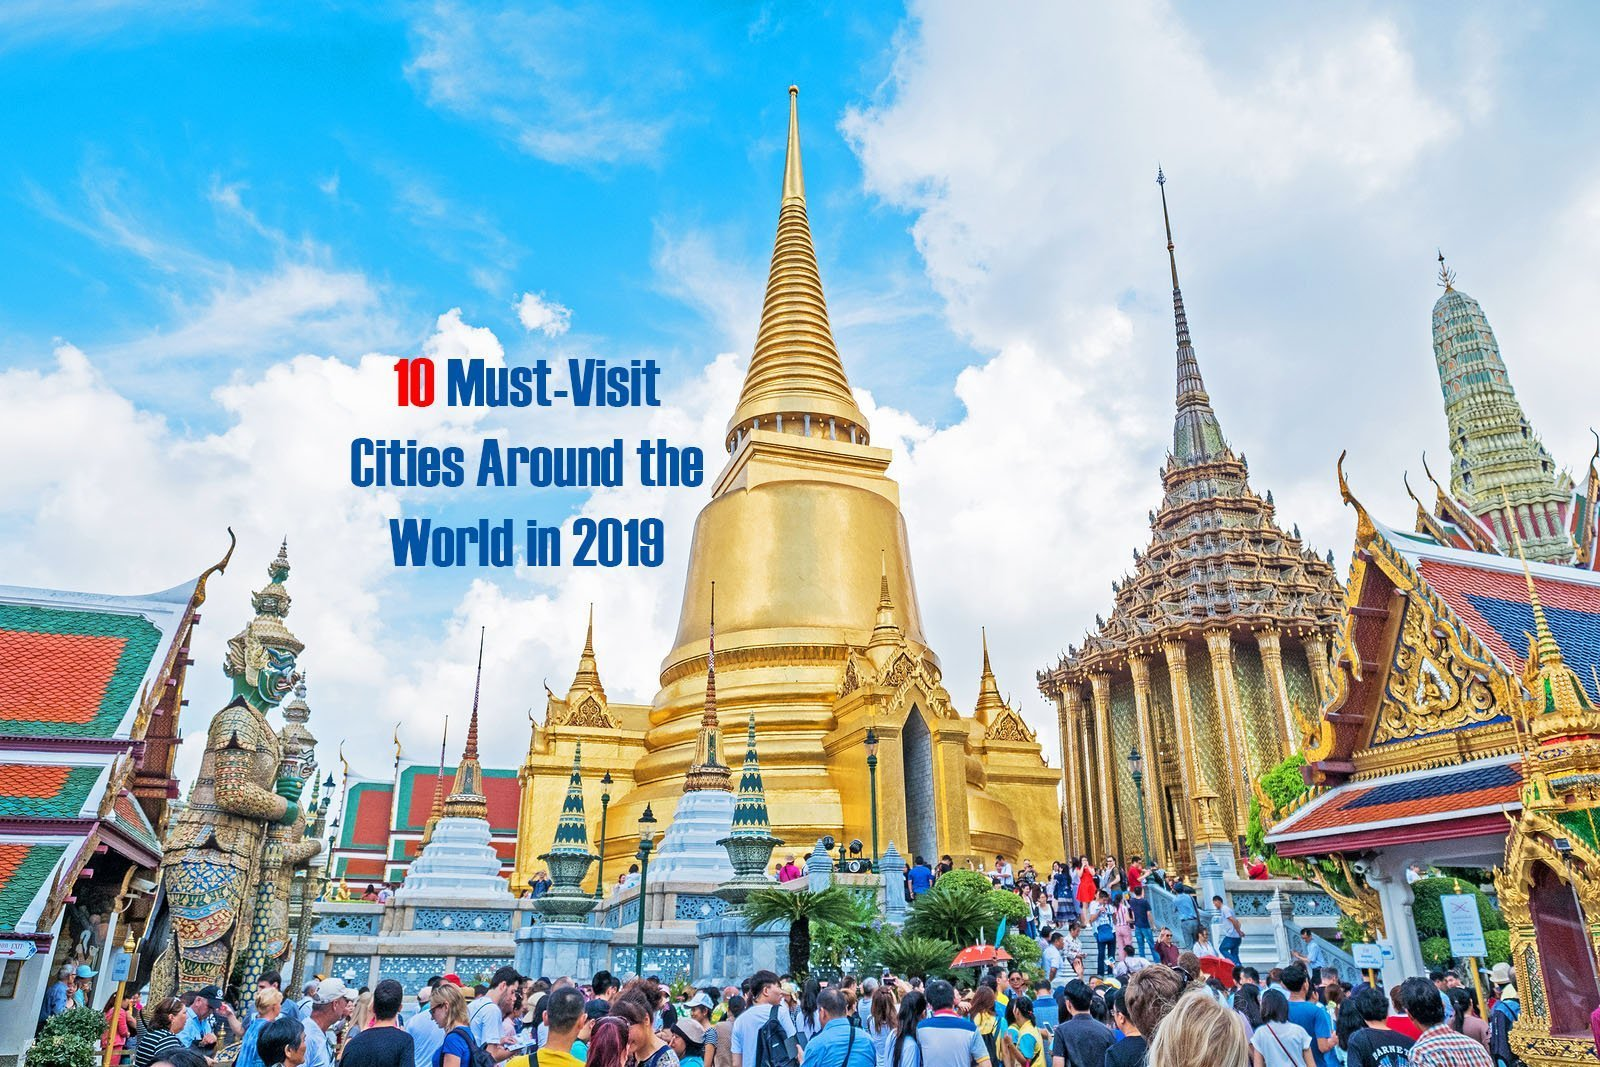 10 Must-Visit Cities Around the World in 2019